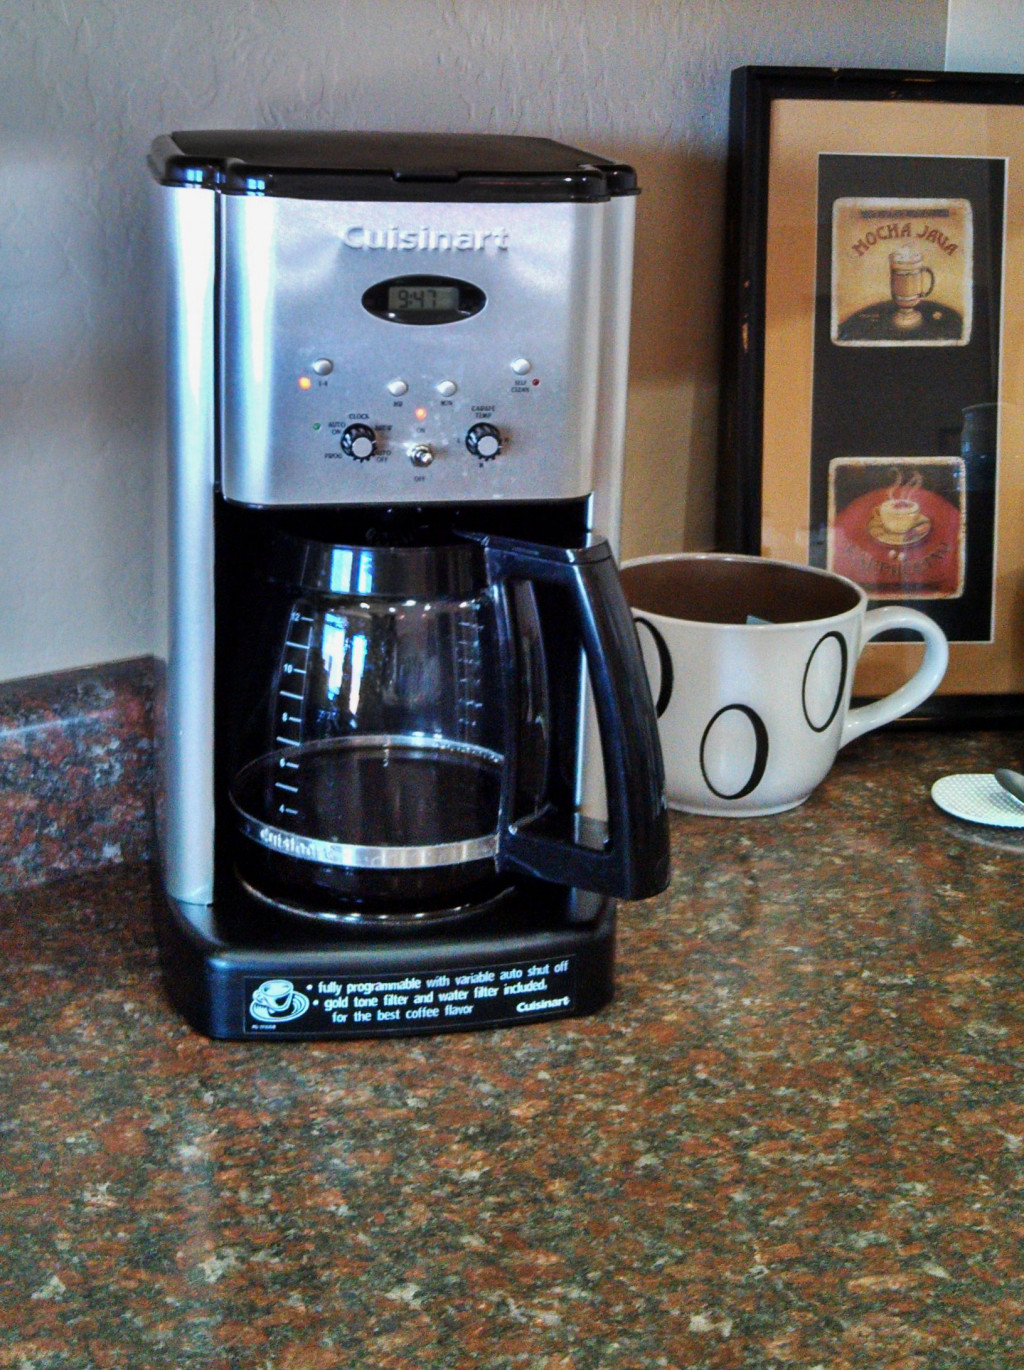 Cuisinart Coffee Maker Quit Brewing : Canot Do Without My Cuisinart Brew Central Coffeemaker